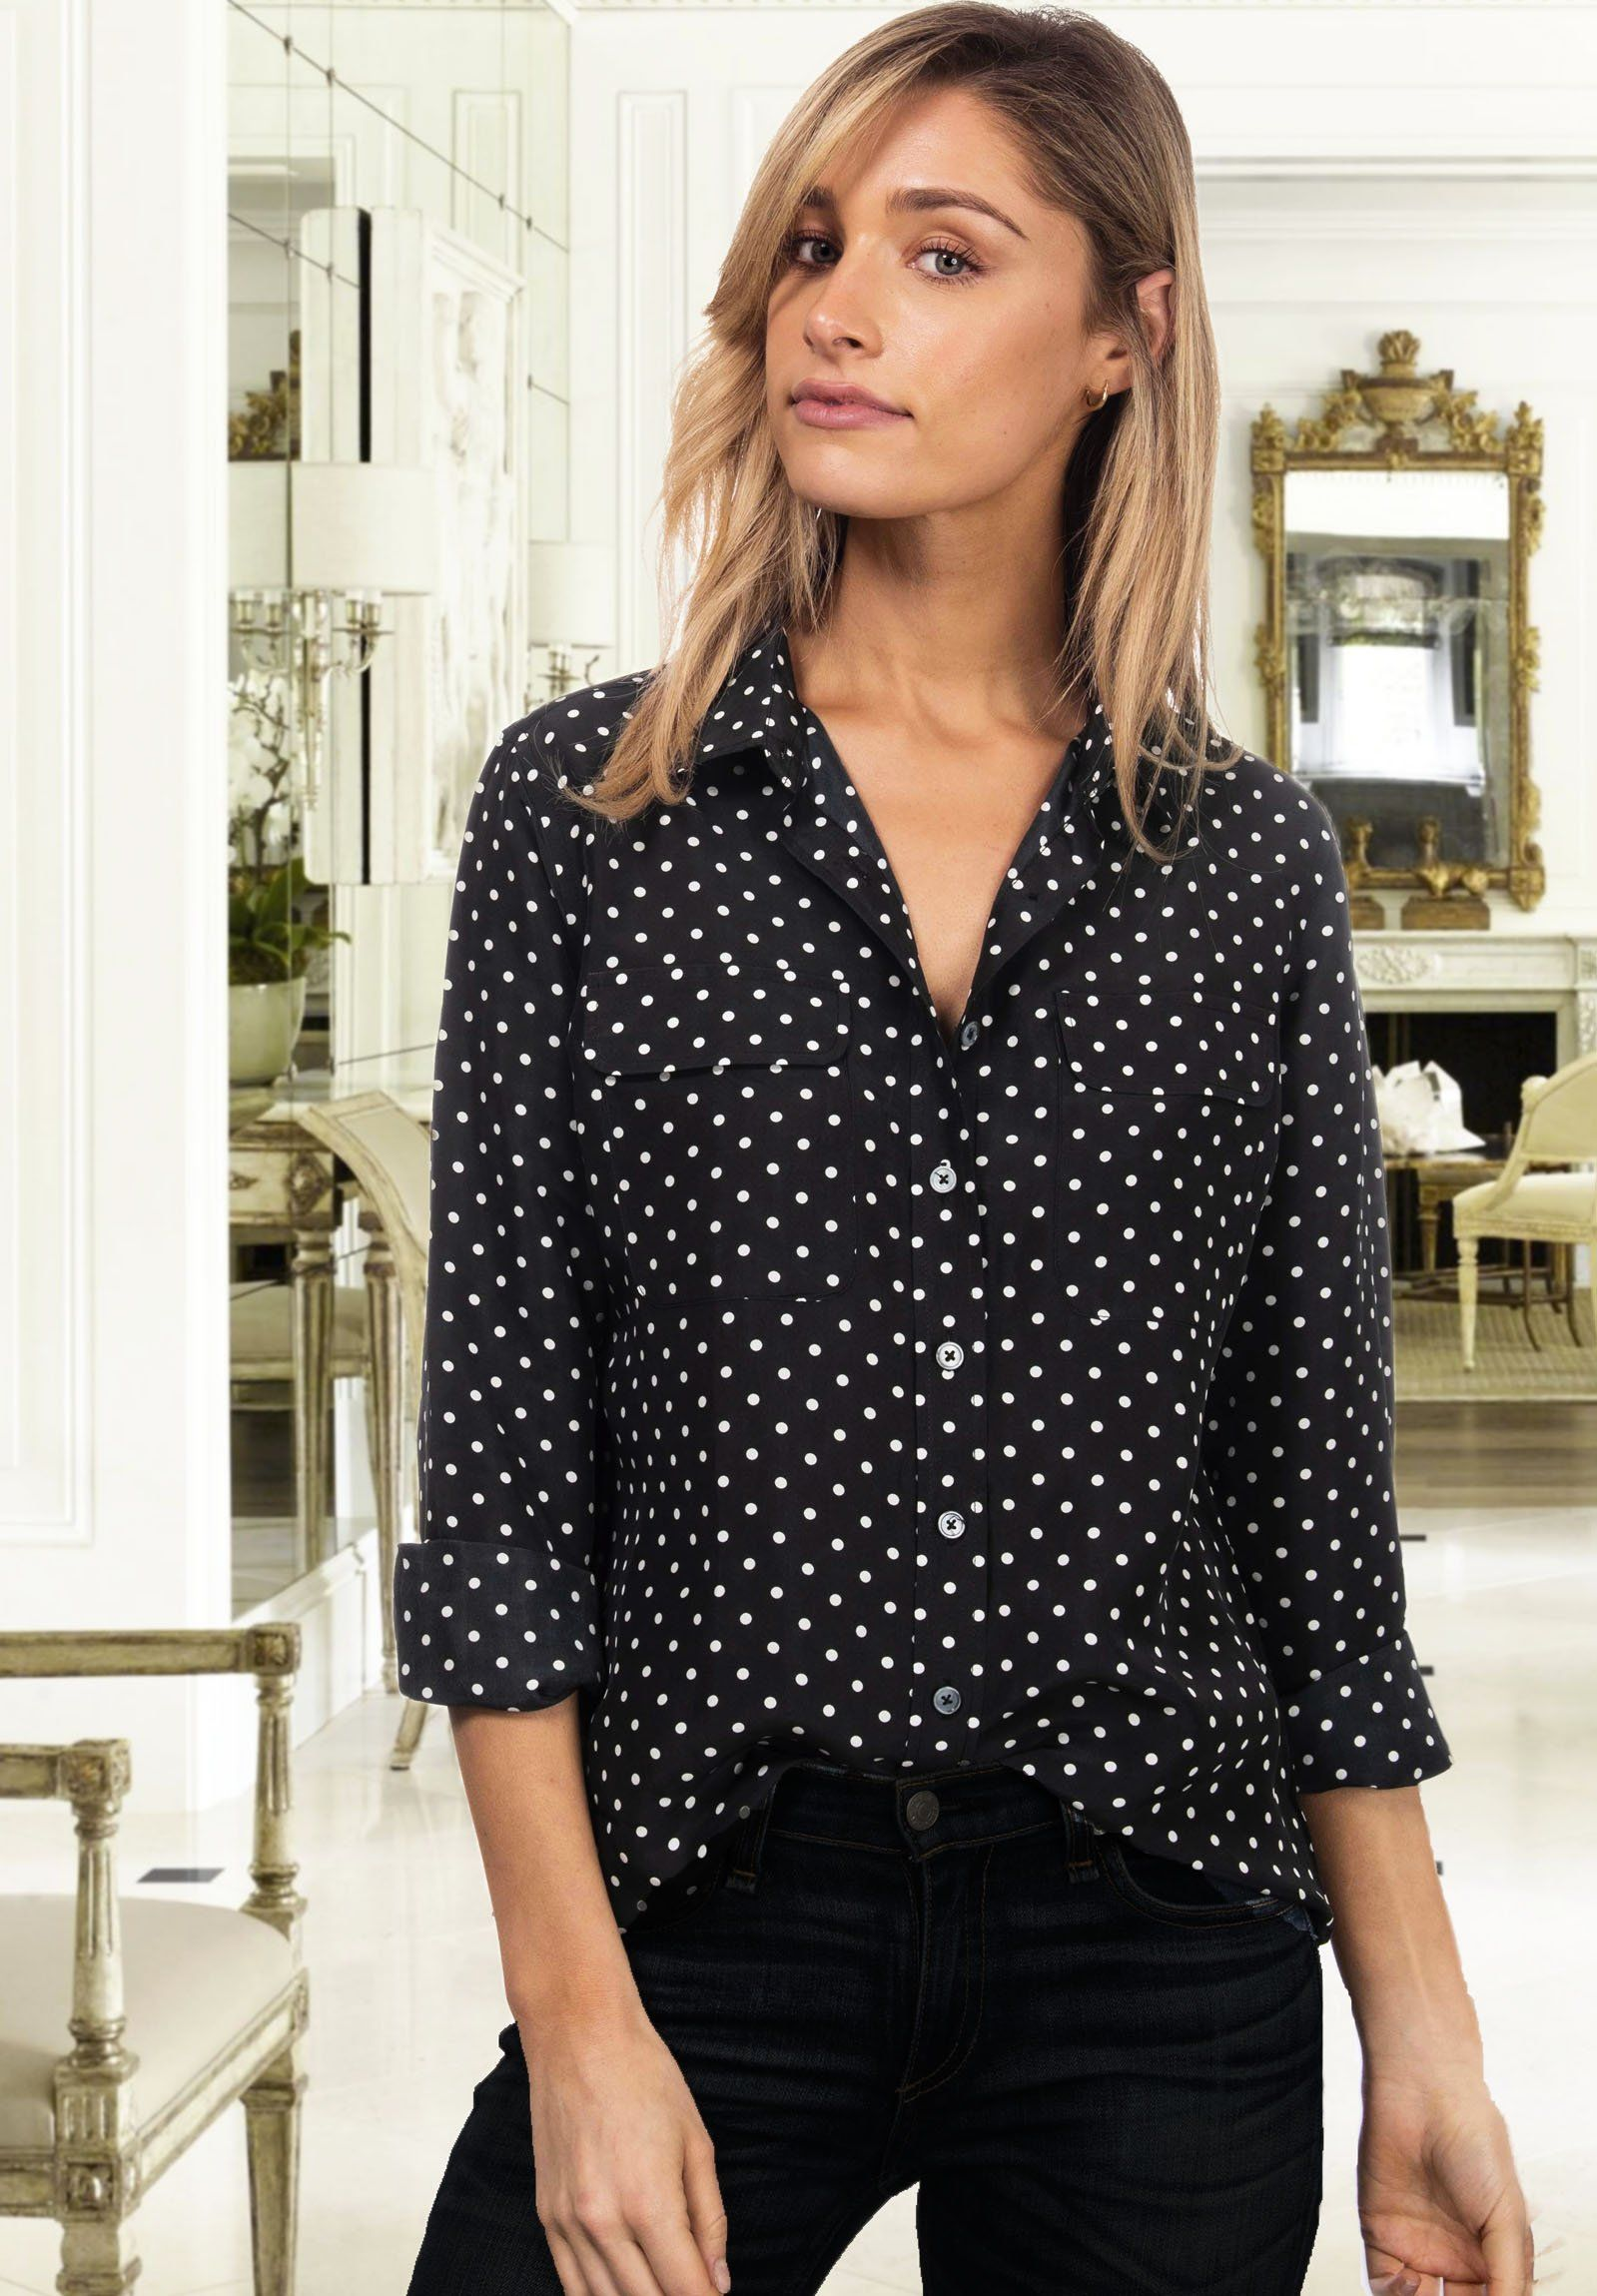 Lete Silk Polka Dots Black, Sand-Washed Shirt with pockets